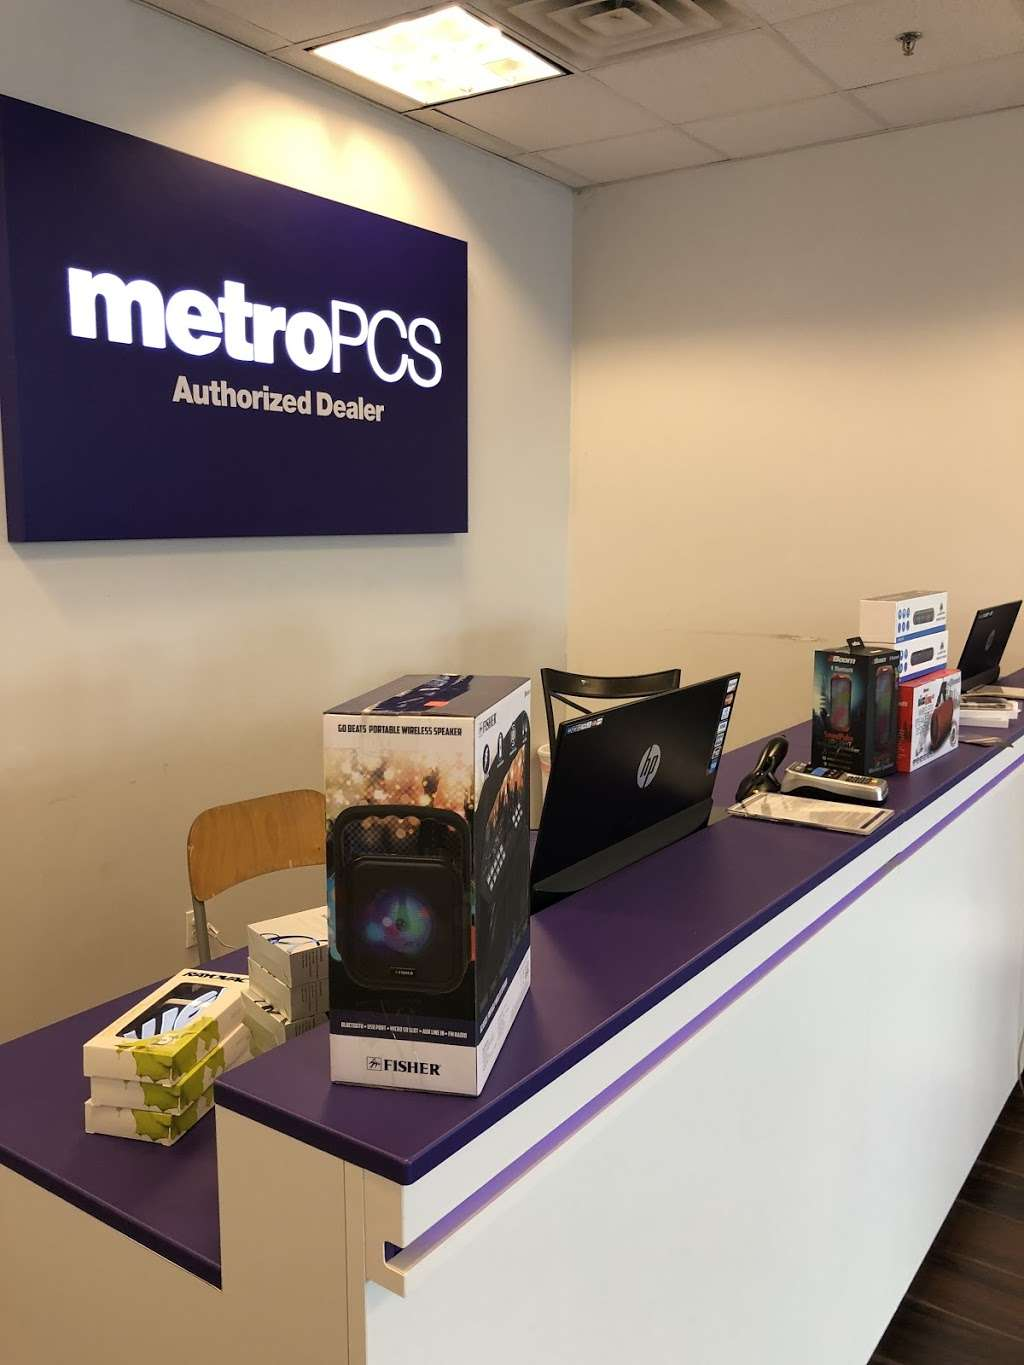 Metro by T-Mobile - electronics store  | Photo 6 of 10 | Address: 500 S River St, Hackensack, NJ 07601, USA | Phone: (201) 373-1000